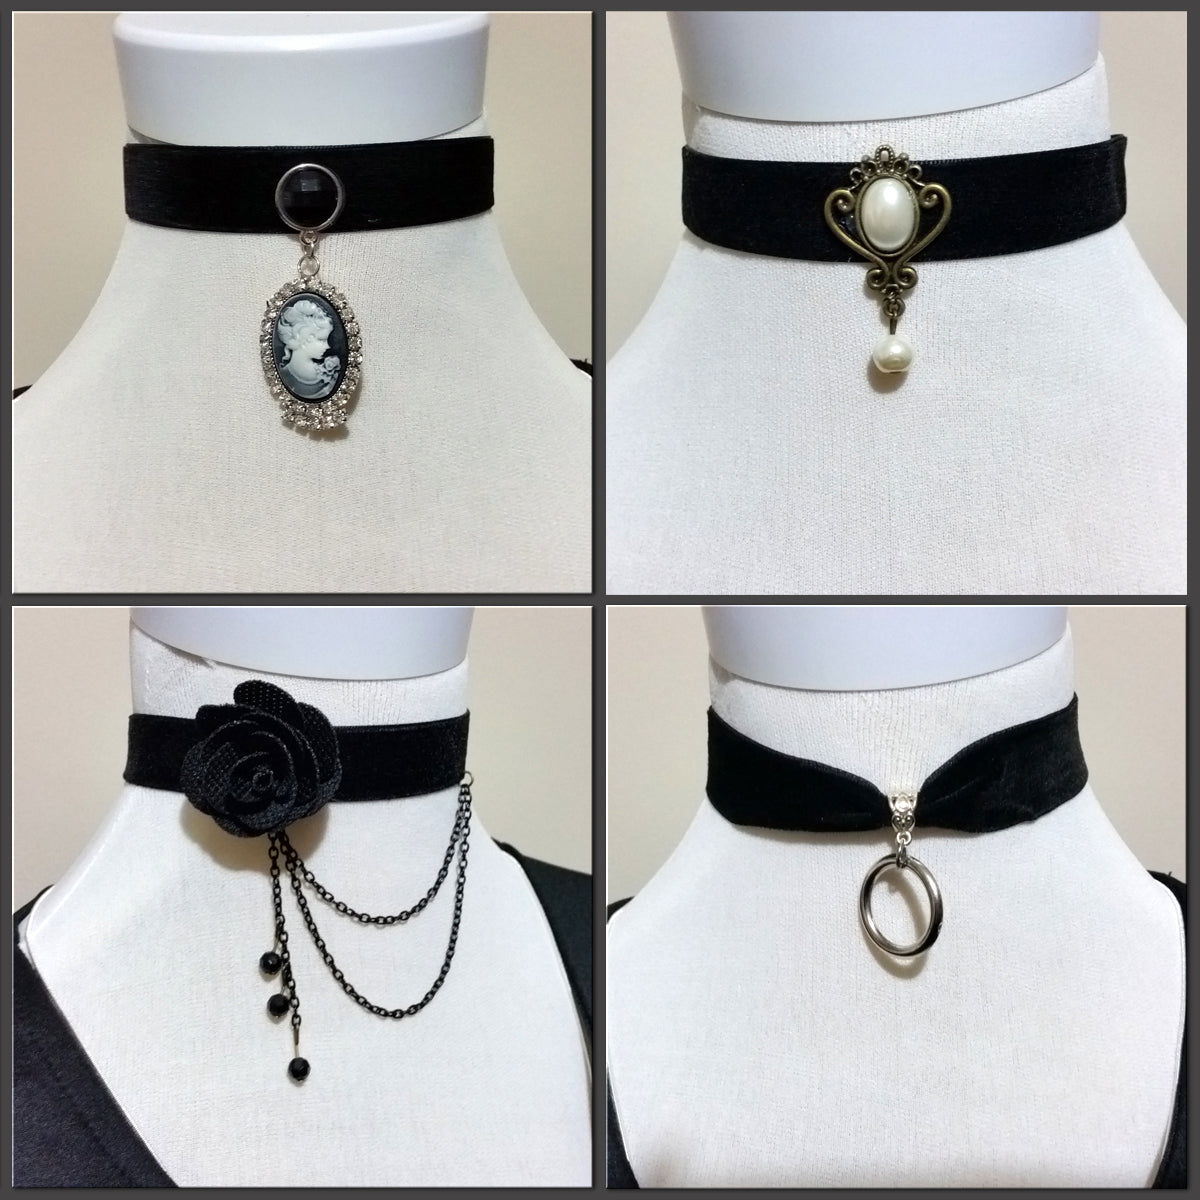 Assorted velvet chokers in four different designs.